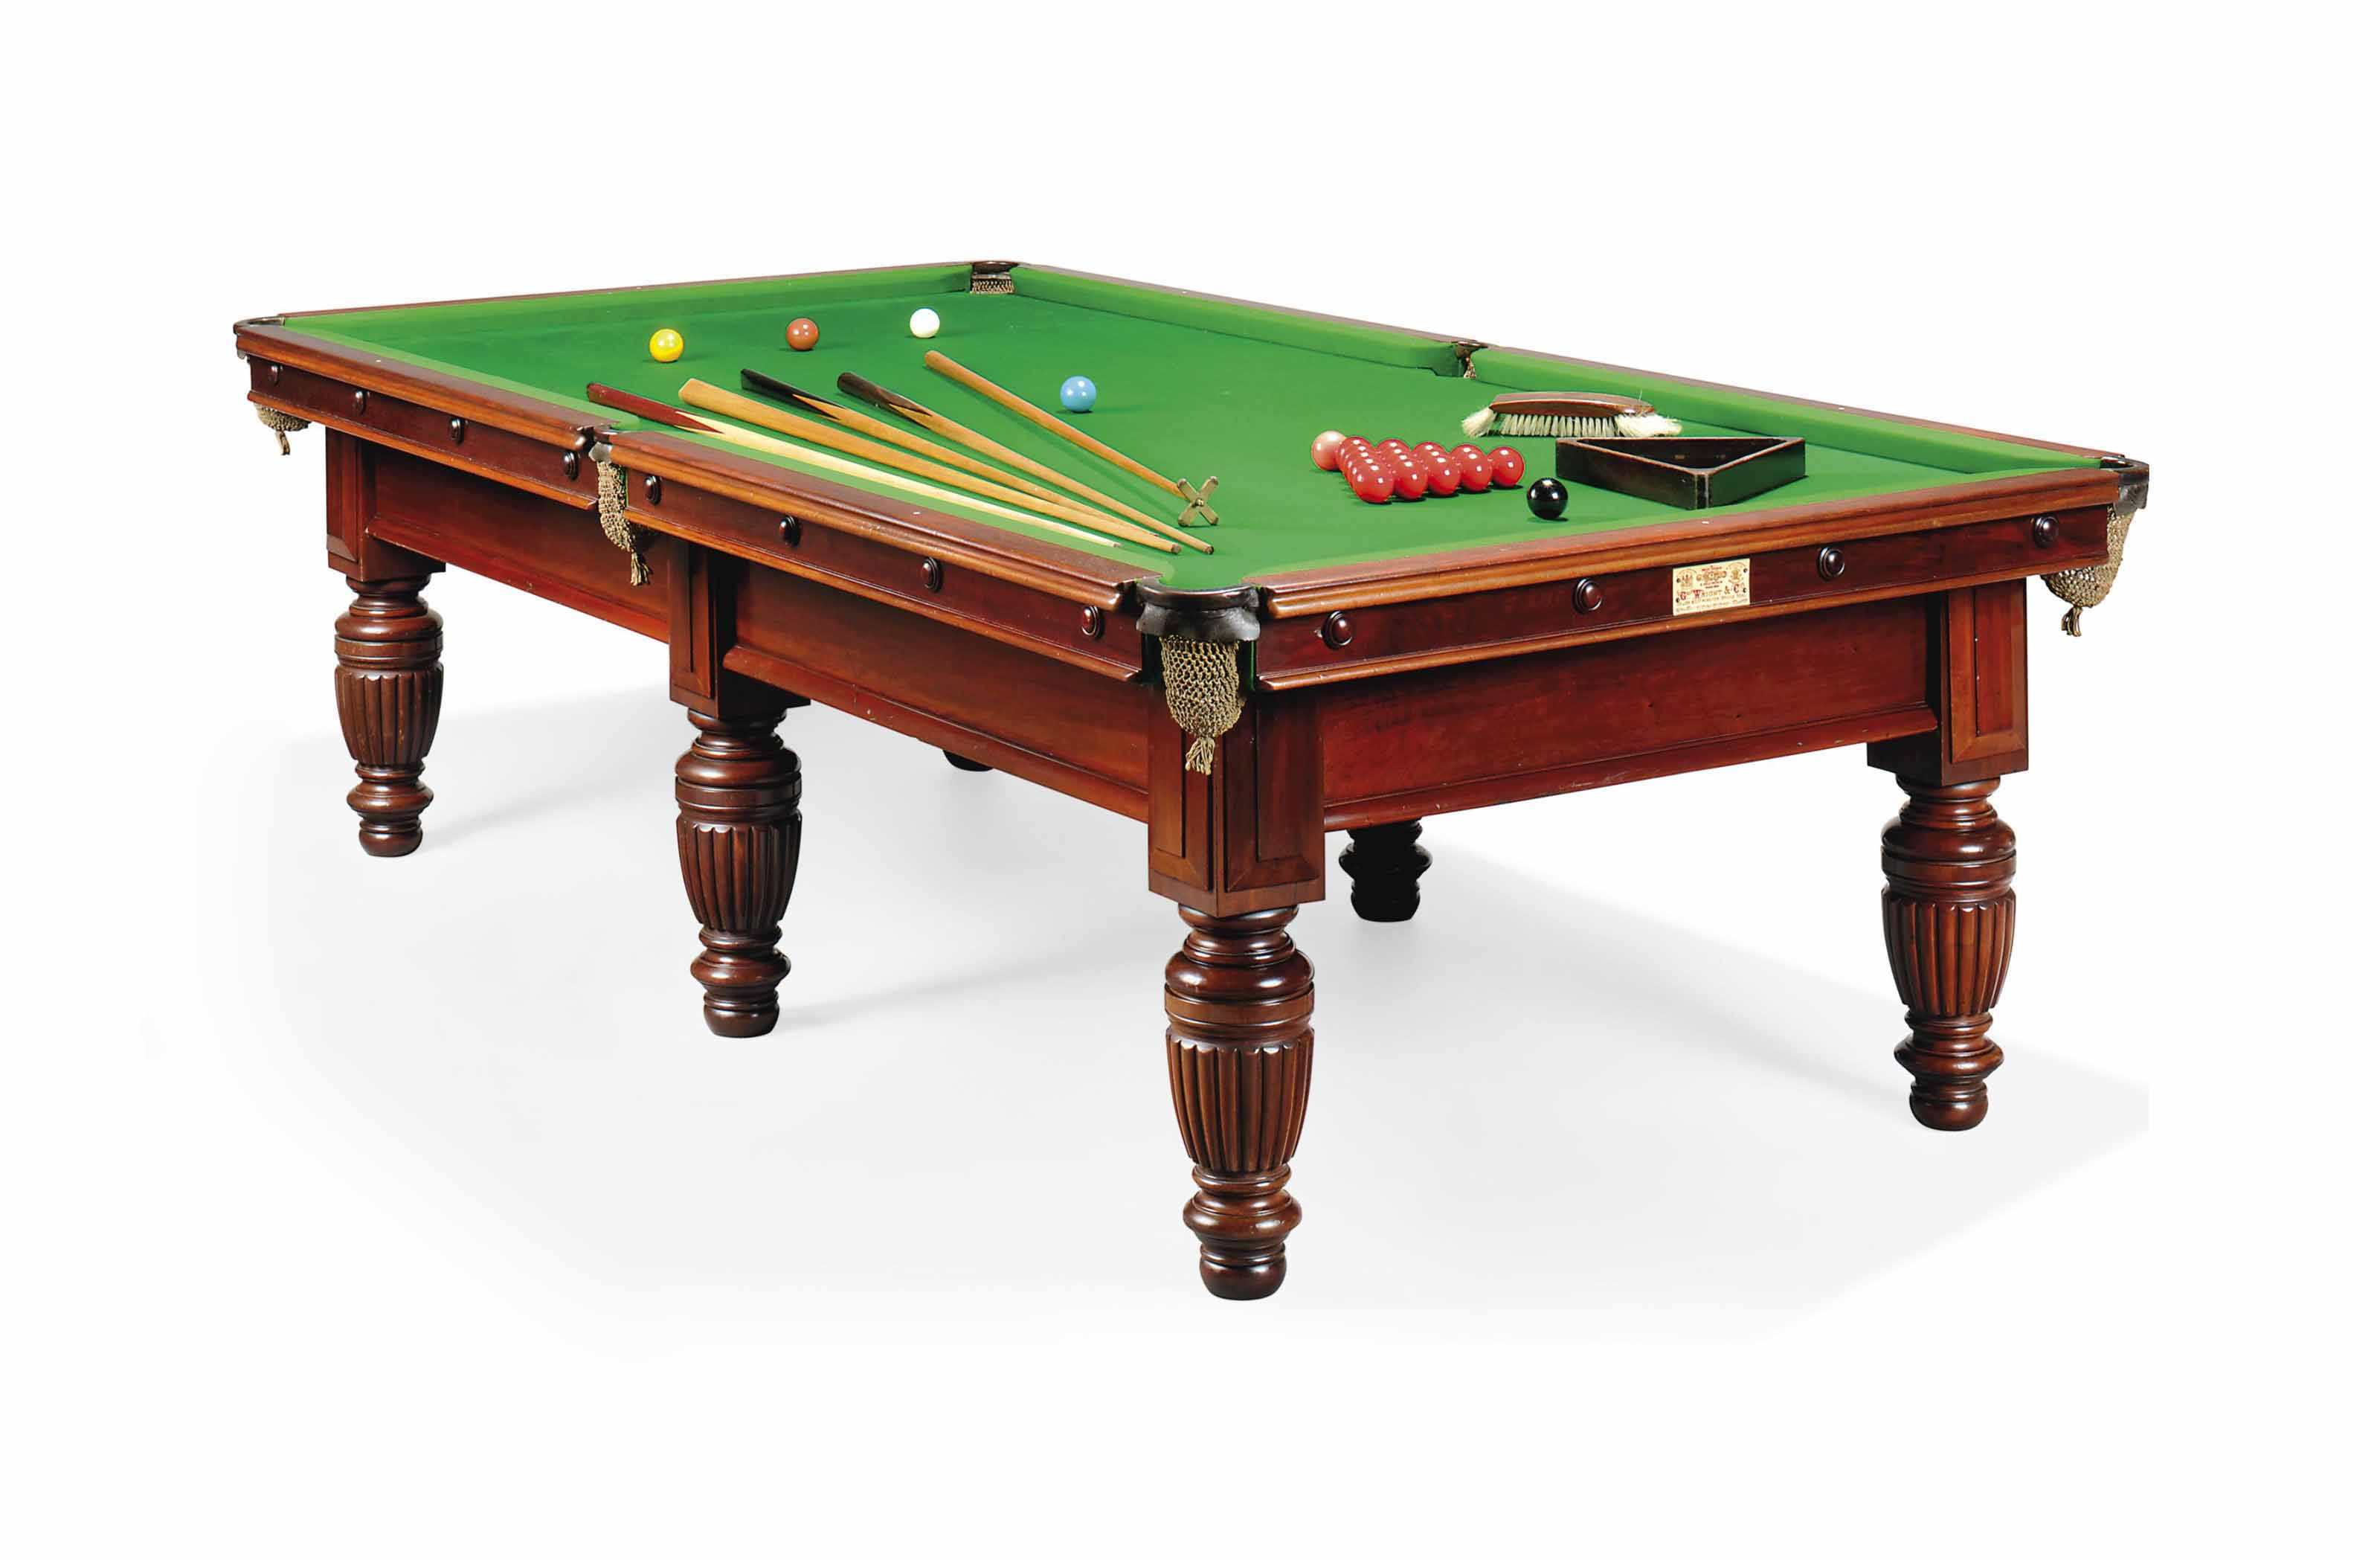 ft da green simbashopping snooker piedi biliardo optional pool table full tavolo diventa en billiards star becomes negozio